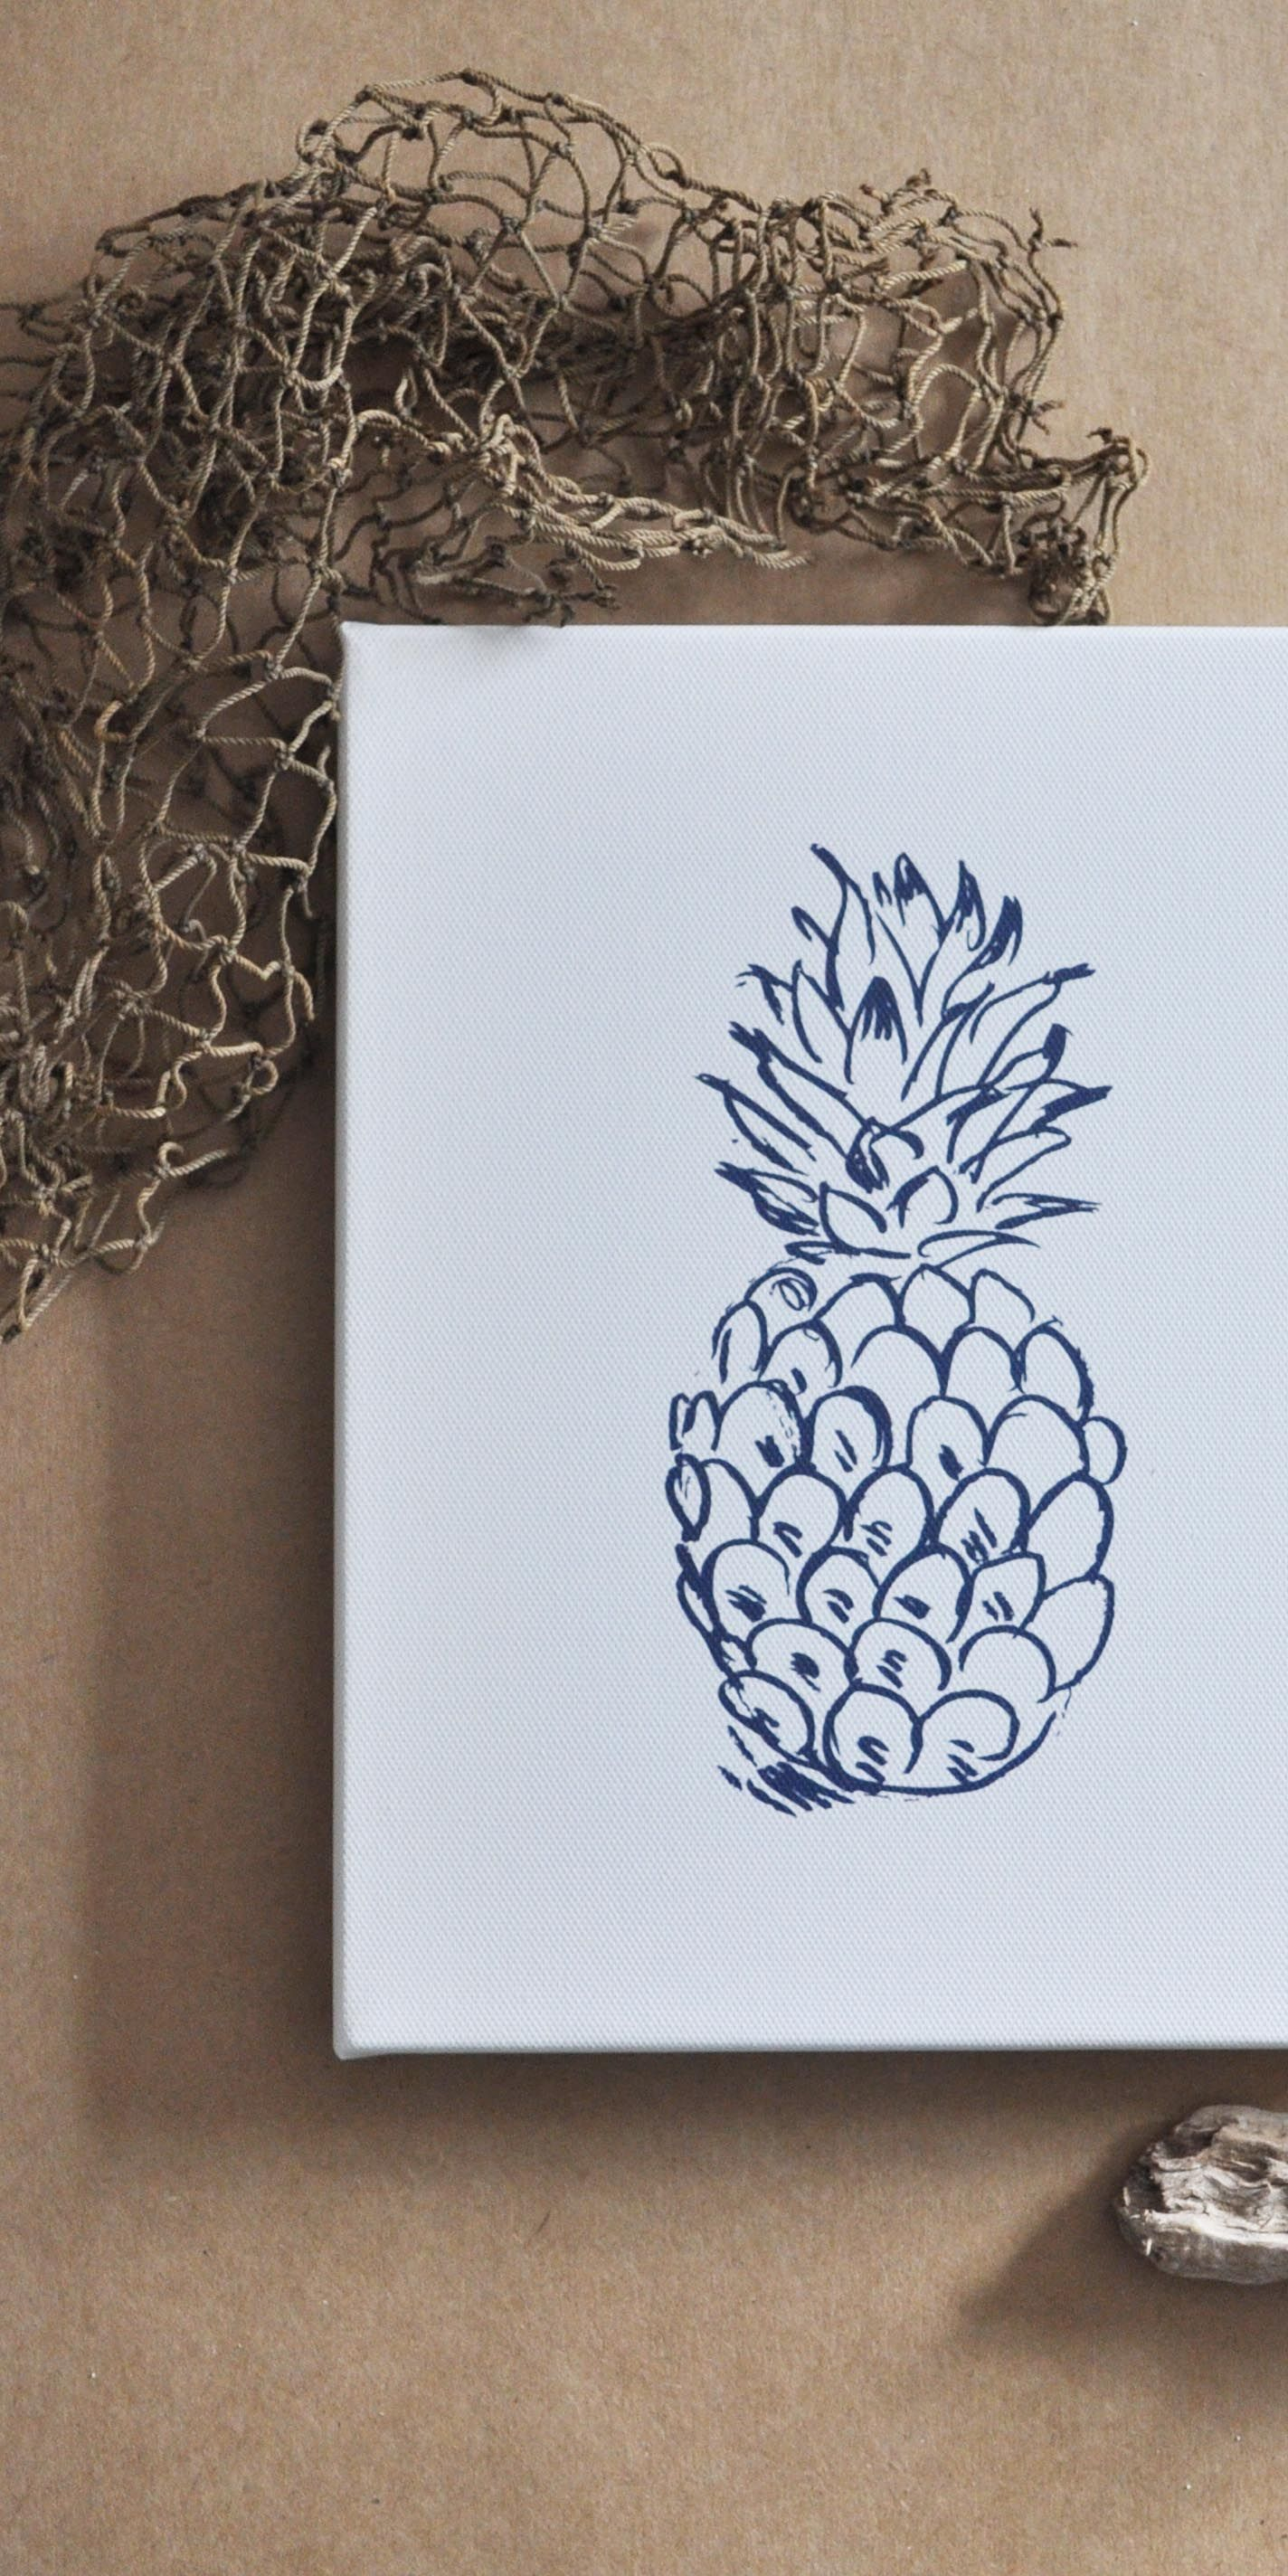 Pineapples Mean Welcome Right Then Warmly Welcome Guests To Your